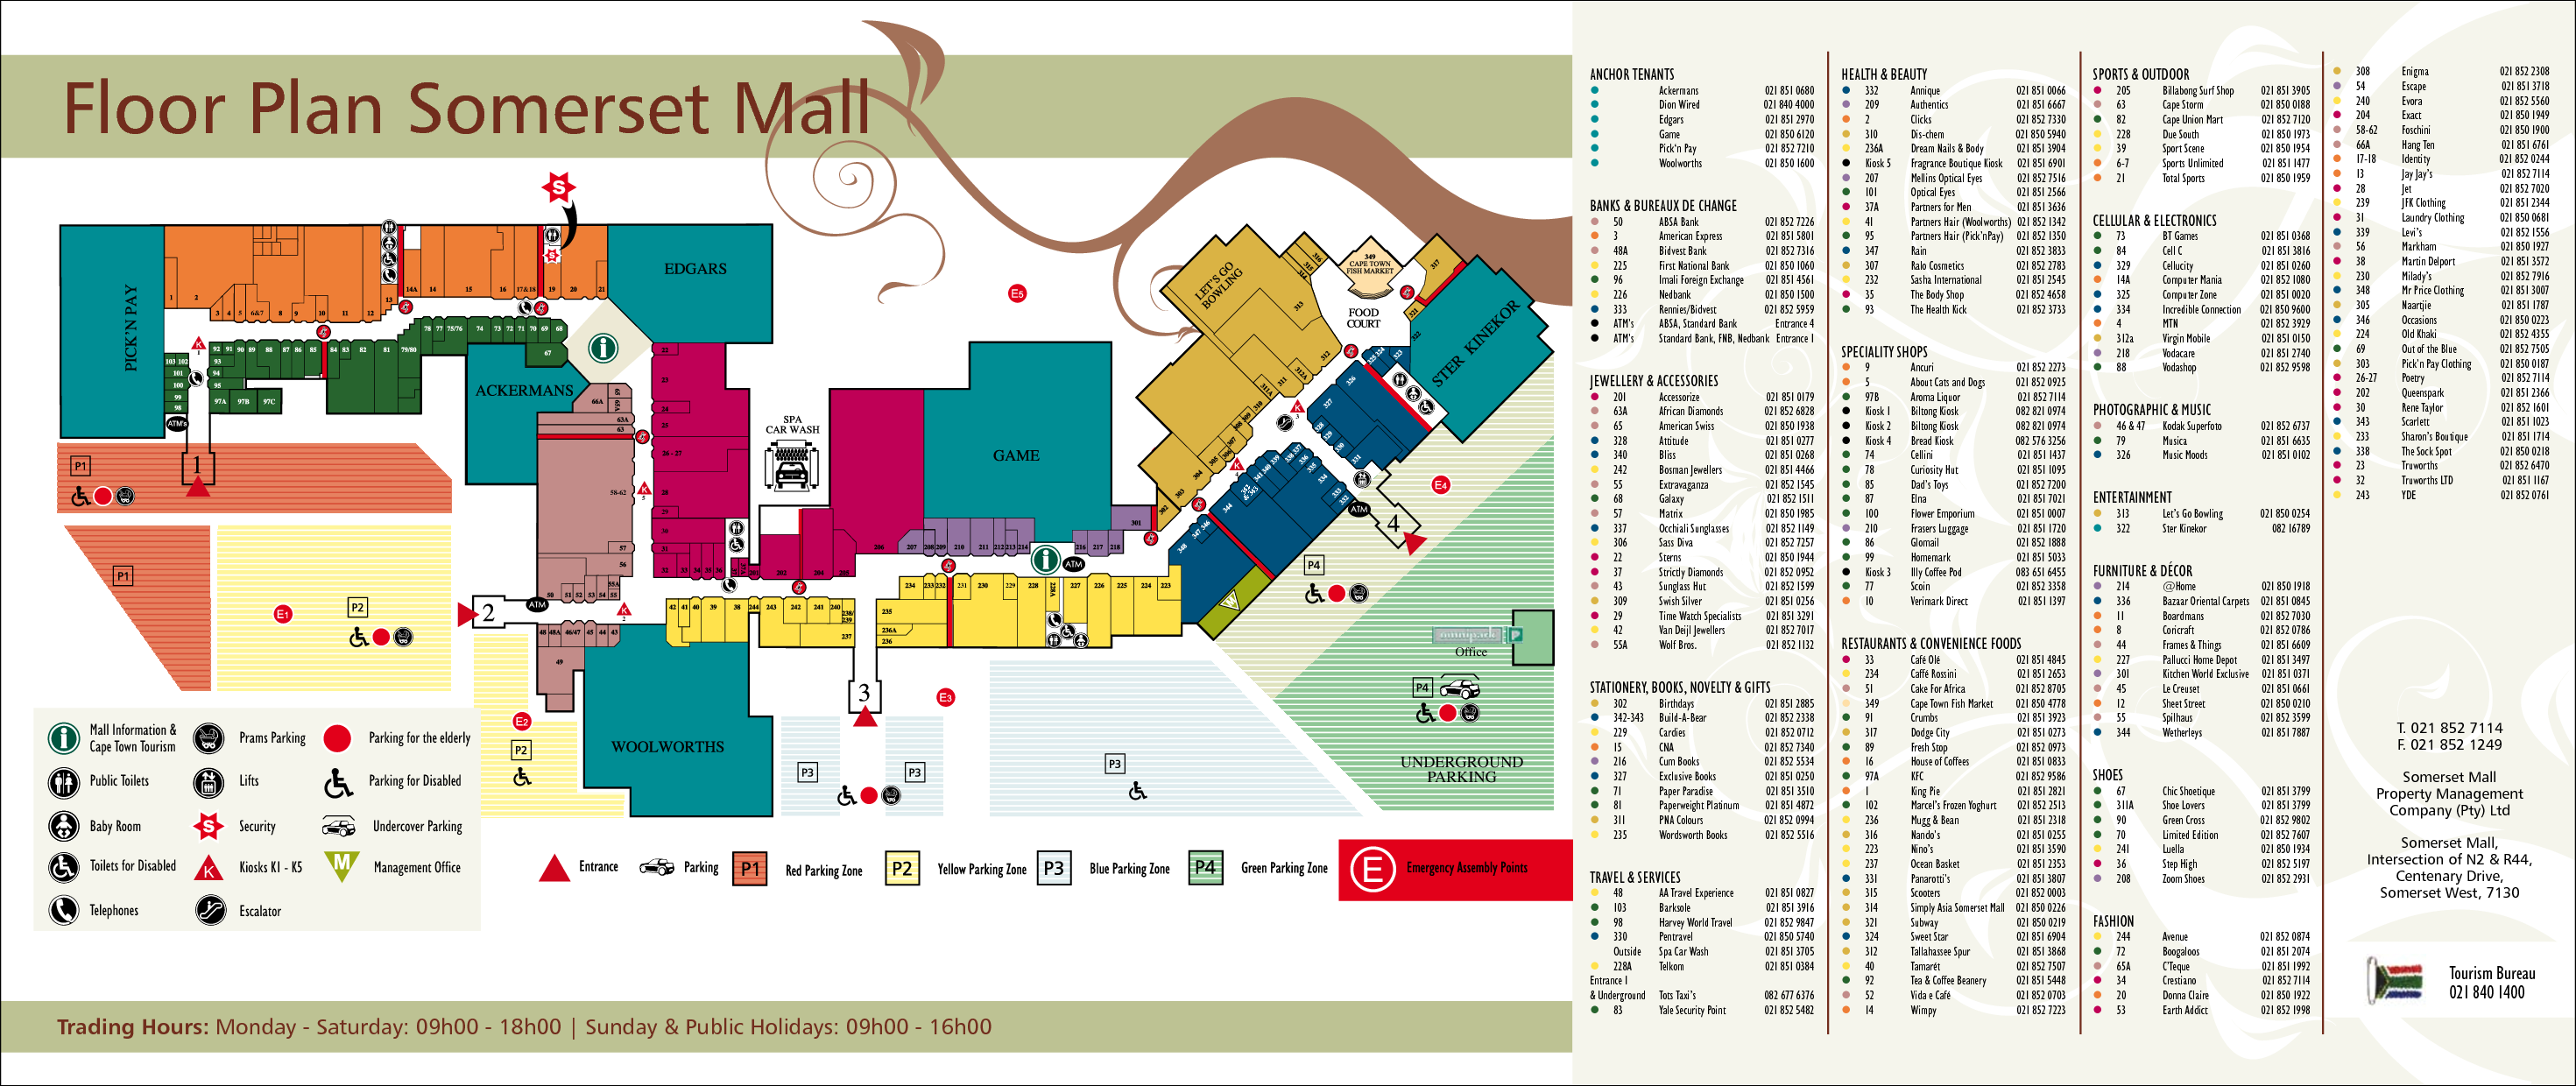 Somerset Mall Map Pin by Shop Around The Fleas on Shopping Tips | Personal finance  Somerset Mall Map